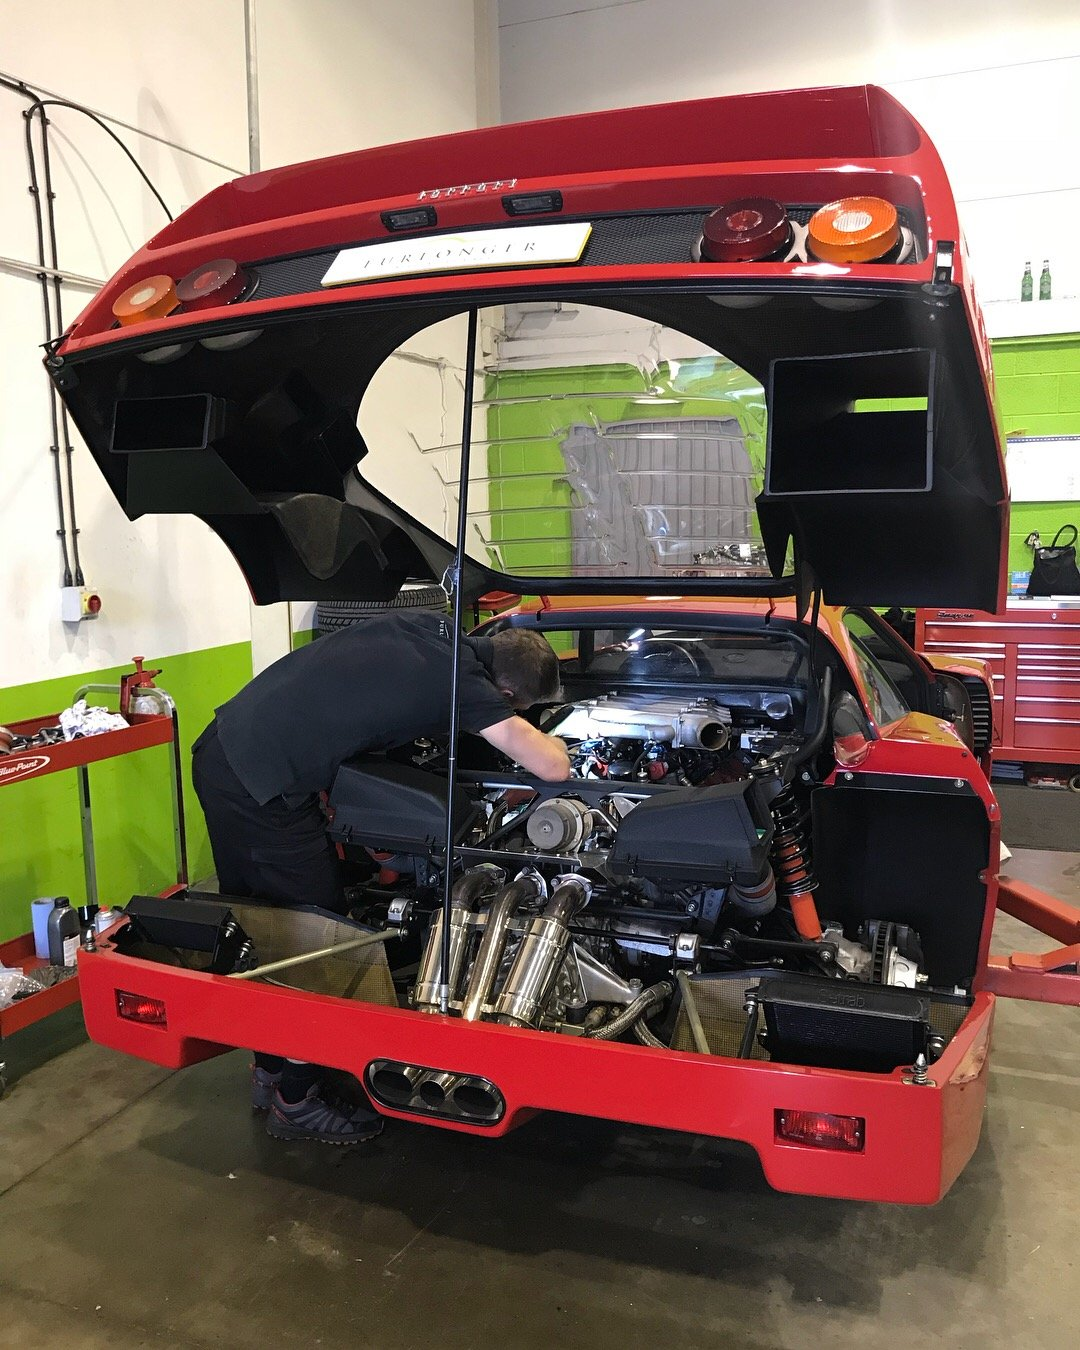 Ferrari 575 M (All Models) Servicing & Maintenance  For Sale (picture 4 of 4)